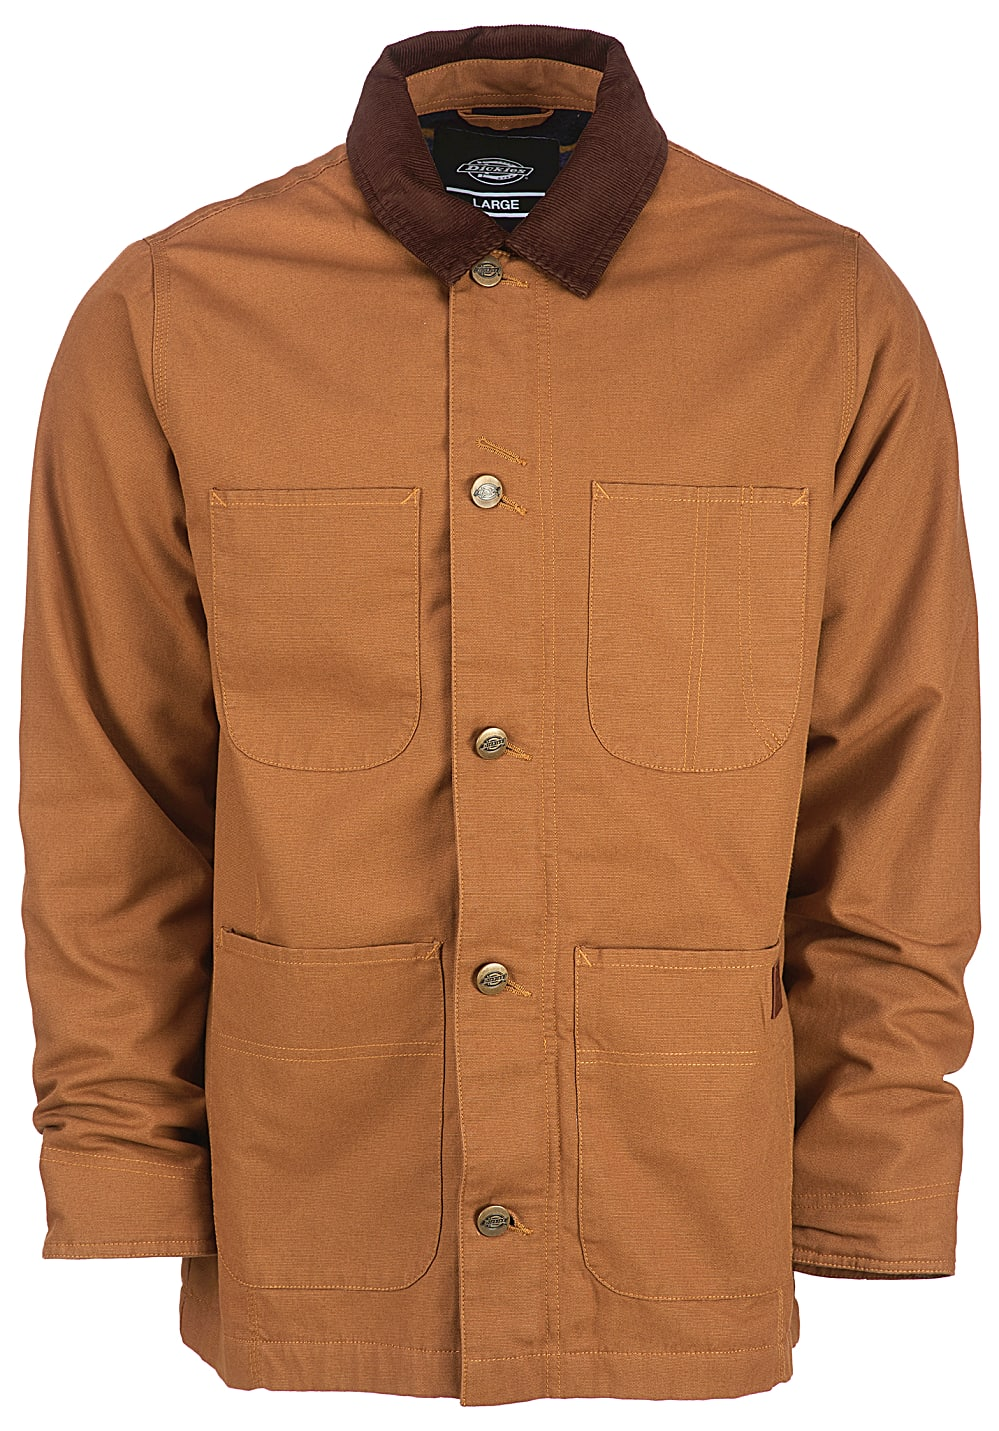 6652991d2 Dickies Norwood - Jacket for Men - Brown - Planet Sports